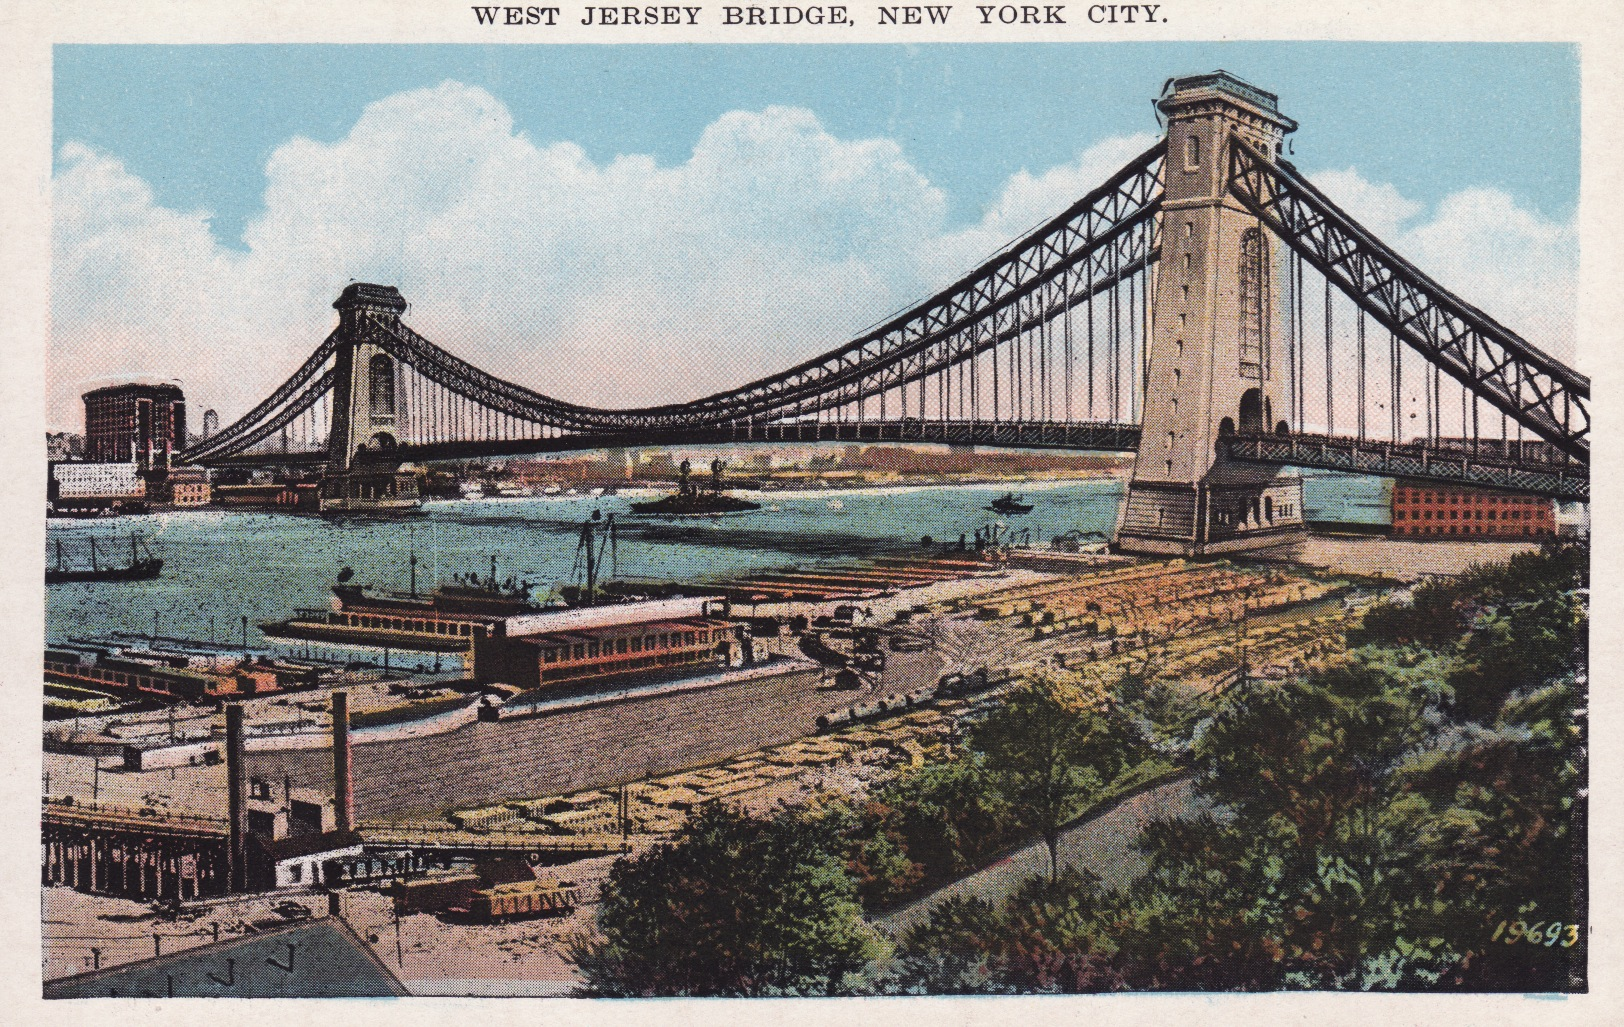 Old New York in Postcards #11 - Unbuilt New York